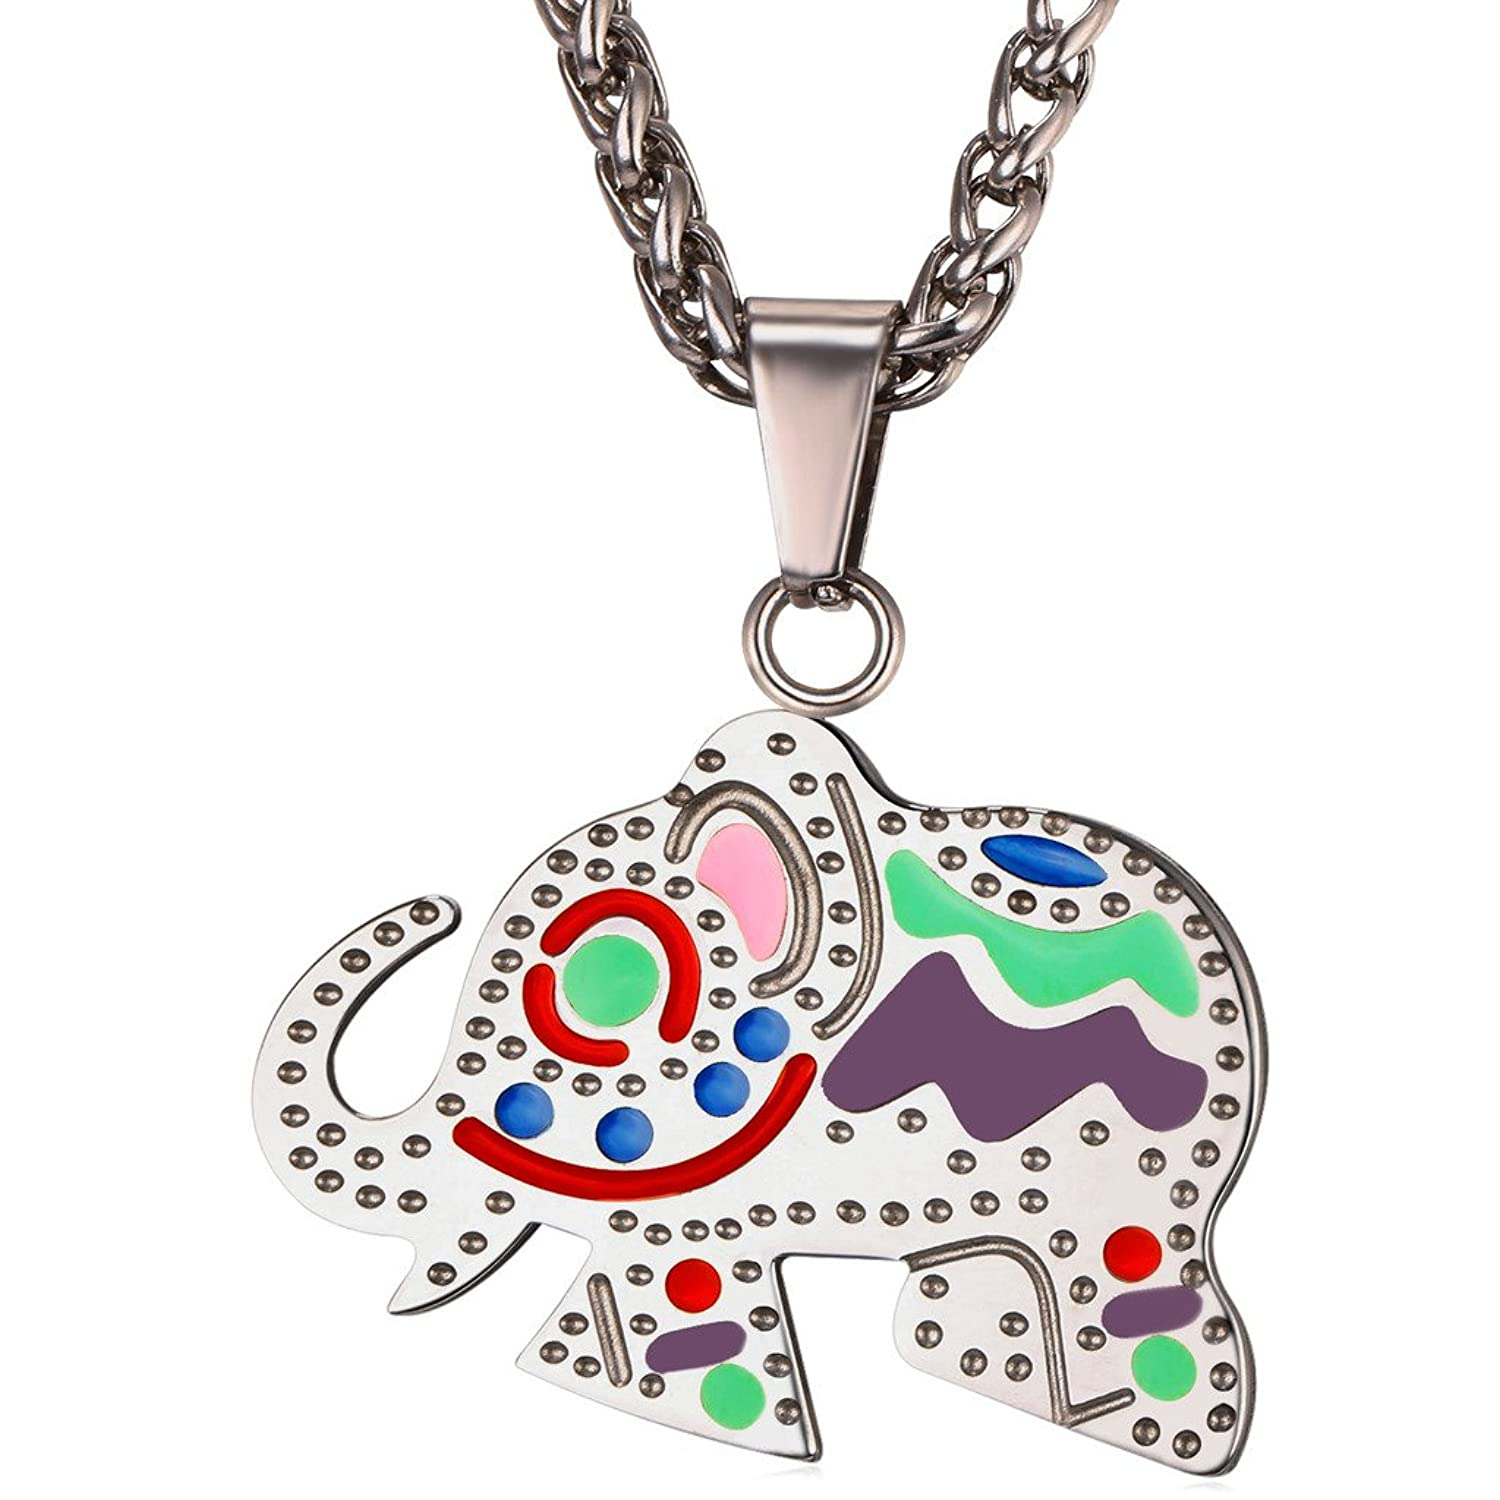 Amulet Necklace U7 Lucky Jewelry Women Girls Stainless Steel Chain Colorful Enamel Elephant Pendant